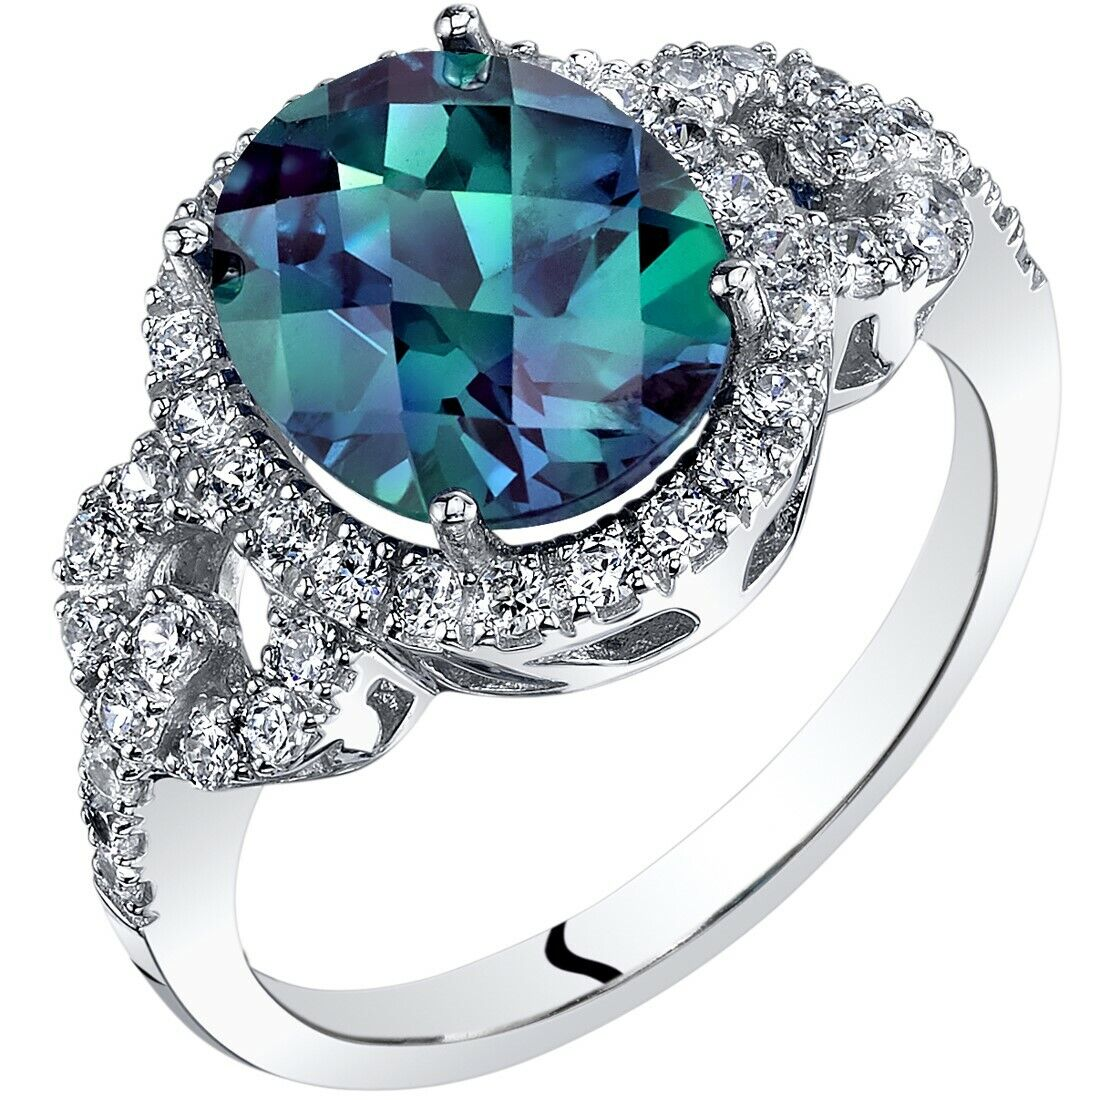 Festive Sales 3.25 Ct Color Changing Alexandrite Oval Gemstone 100/% Natural AGI Certified H6438